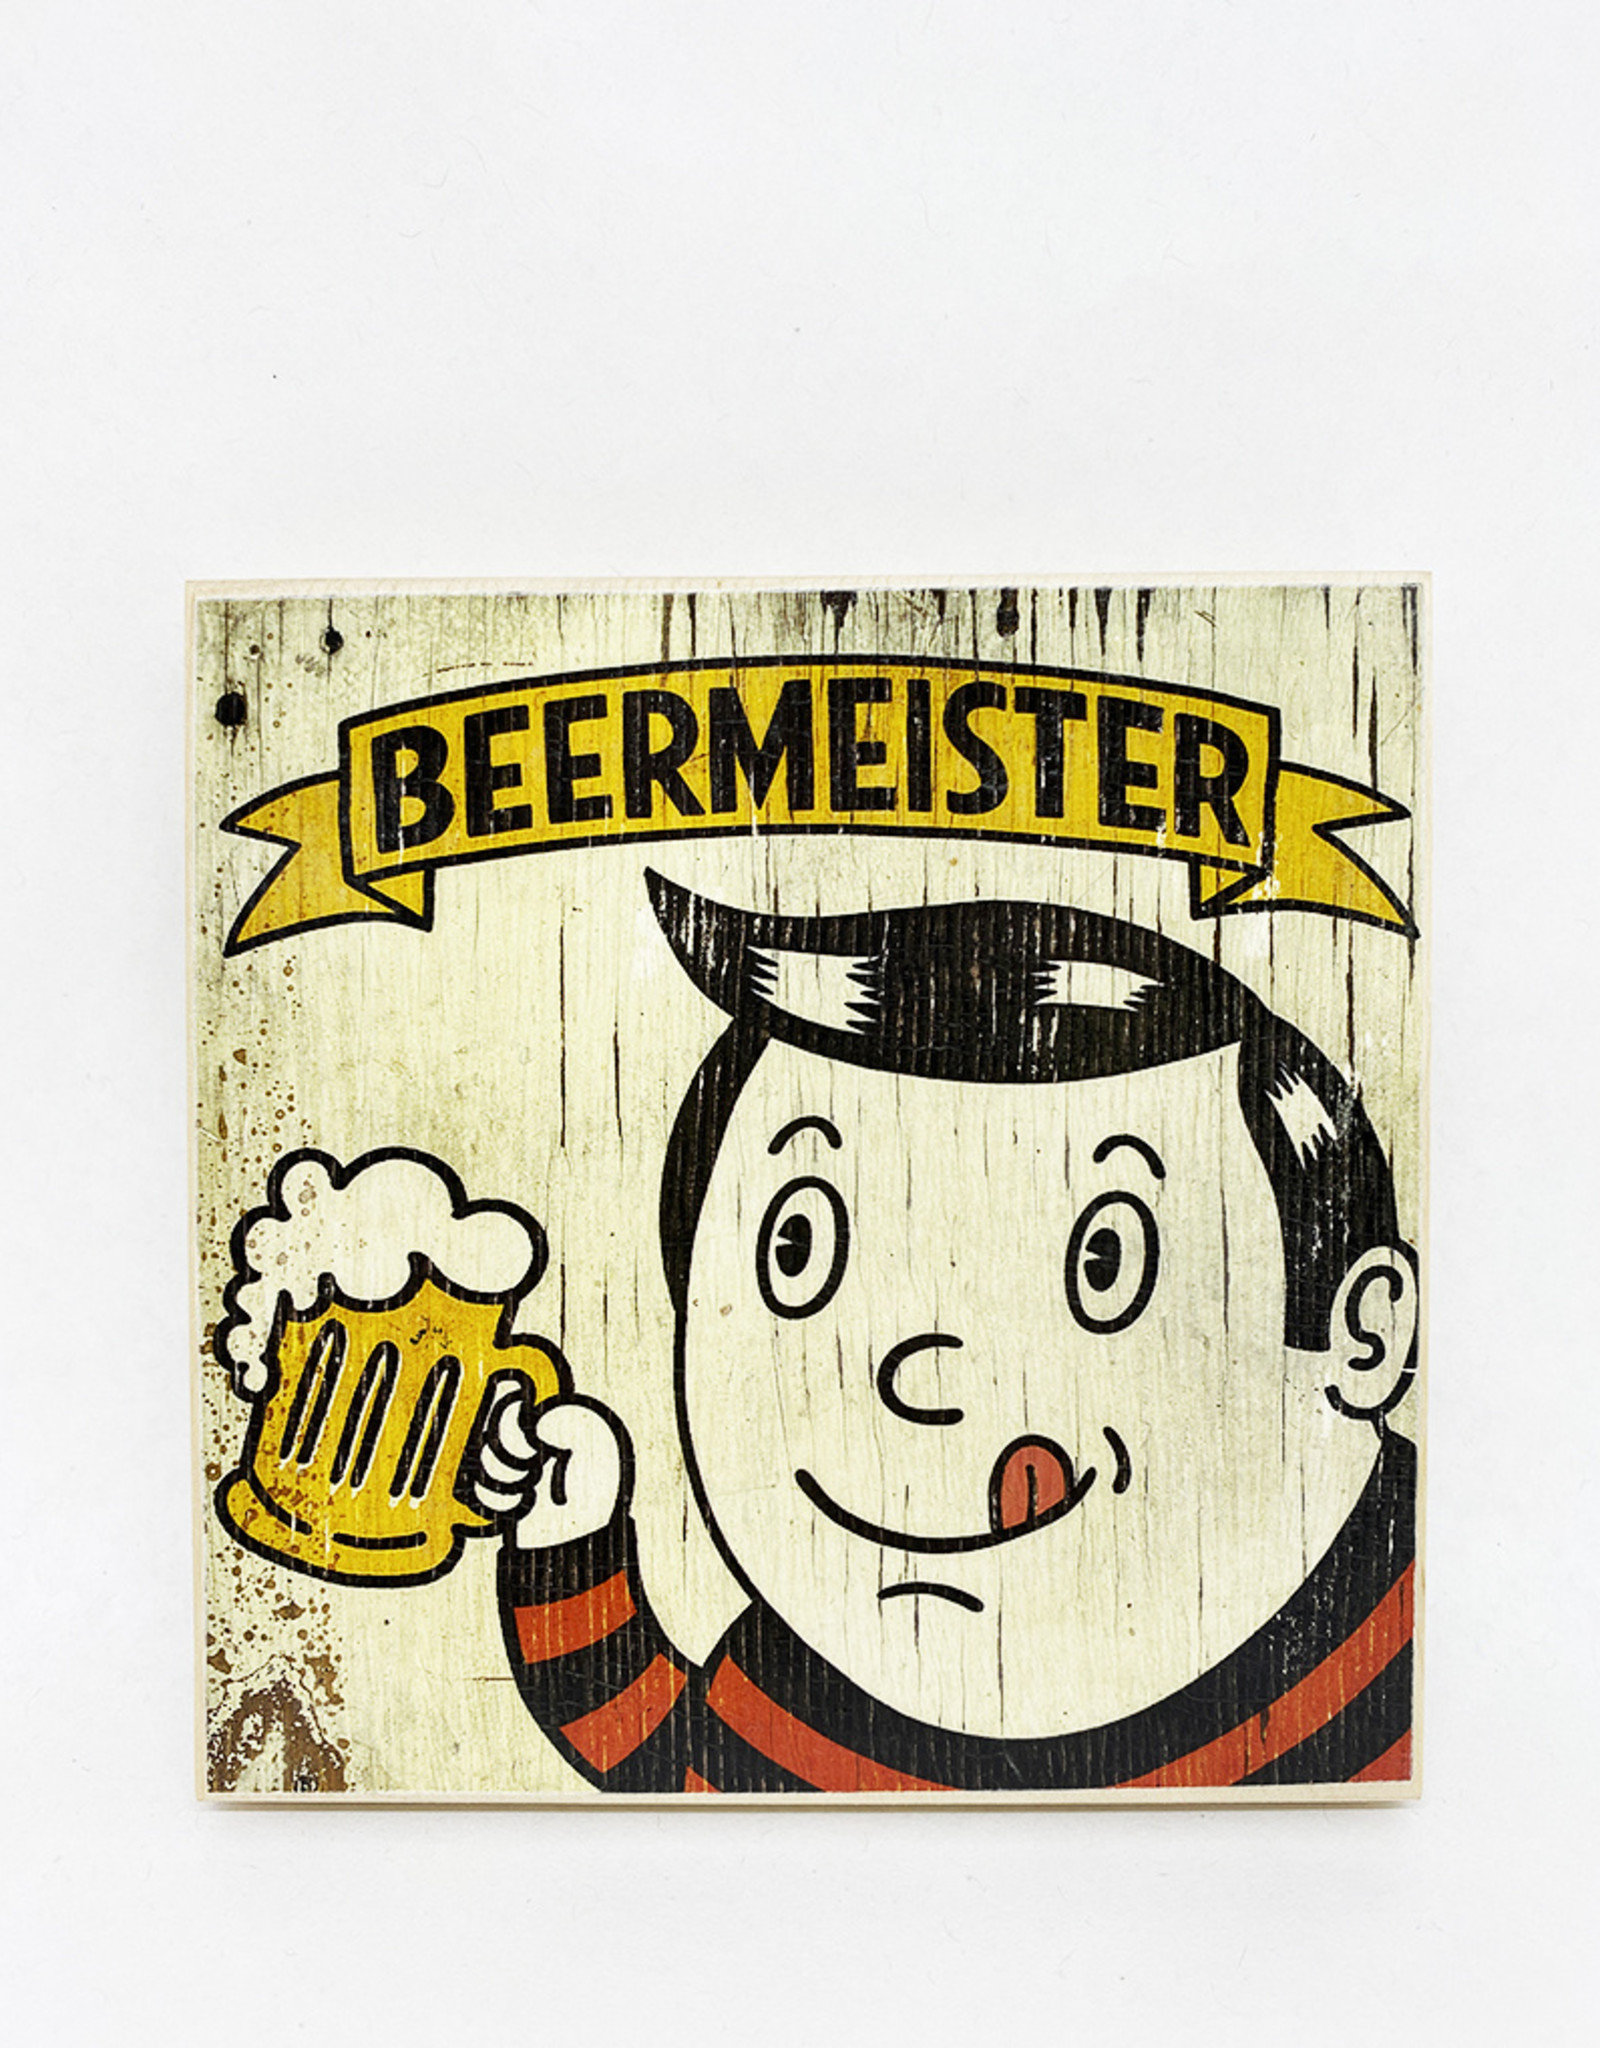 Dick Daniels Beermeister Image Transfer on Wood Block